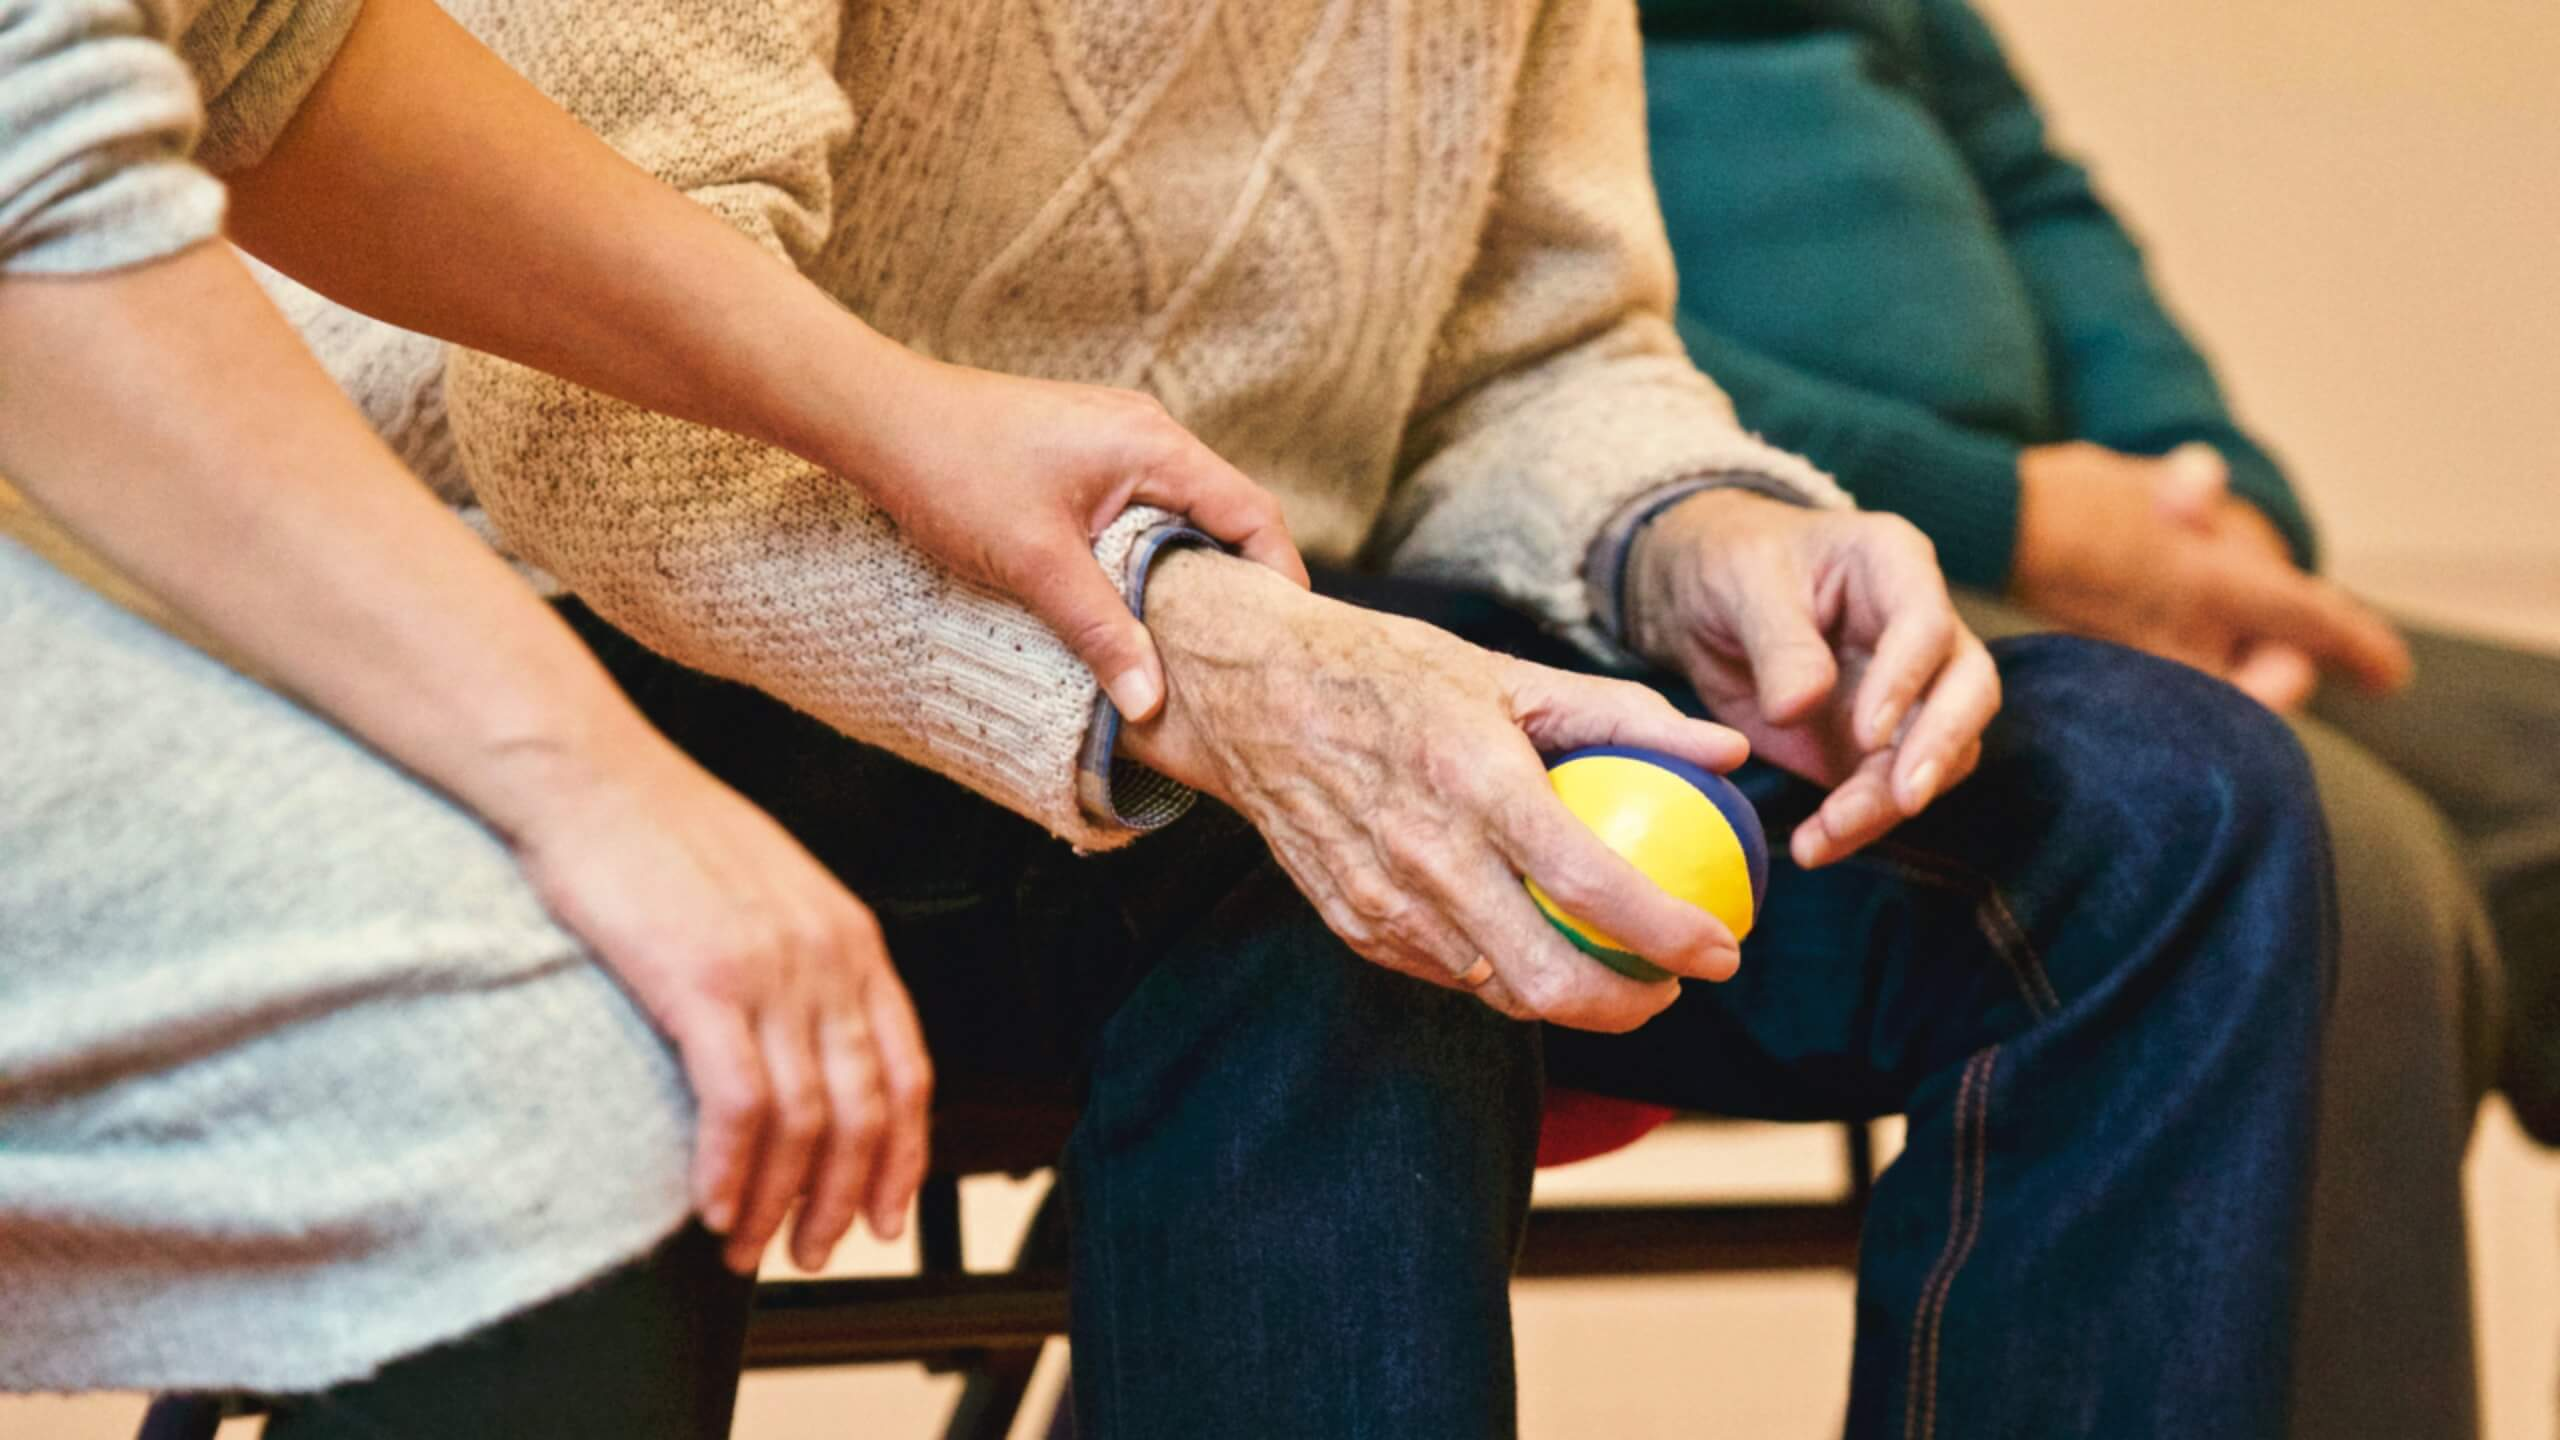 An elderly woman's hands holding a black and white stress ball, while a pair of younger hands grasp her wrist.